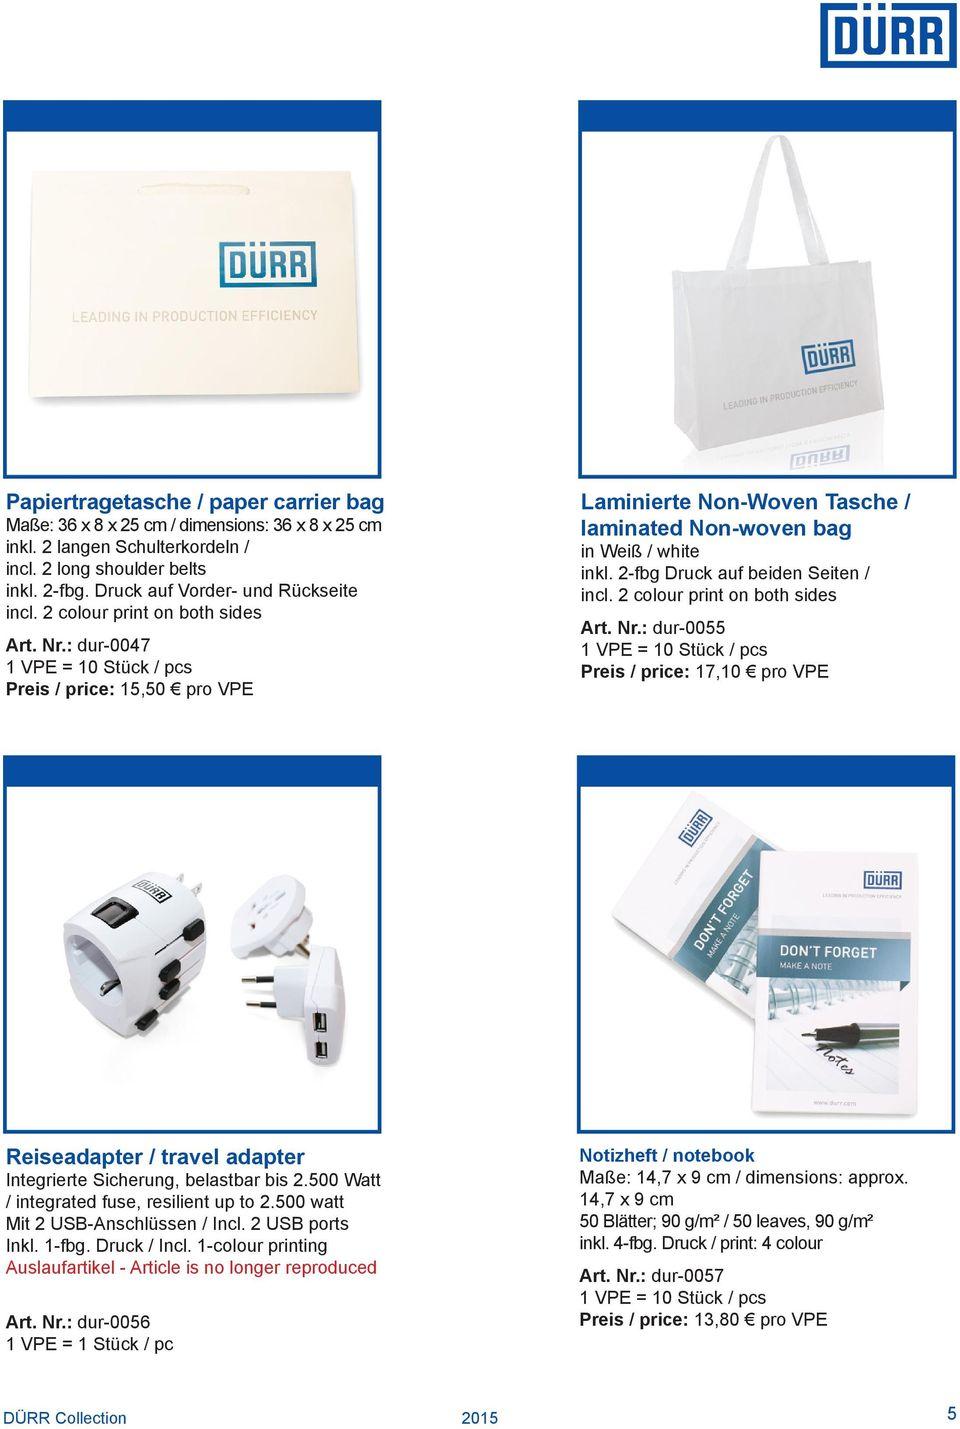 2 colour print on both sides Art. Nr.: dur-0055 Preis / price: 17,10 pro VPE Reiseadapter / travel adapter Integrierte Sicherung, belastbar bis 2.500 Watt / integrated fuse, resilient up to 2.